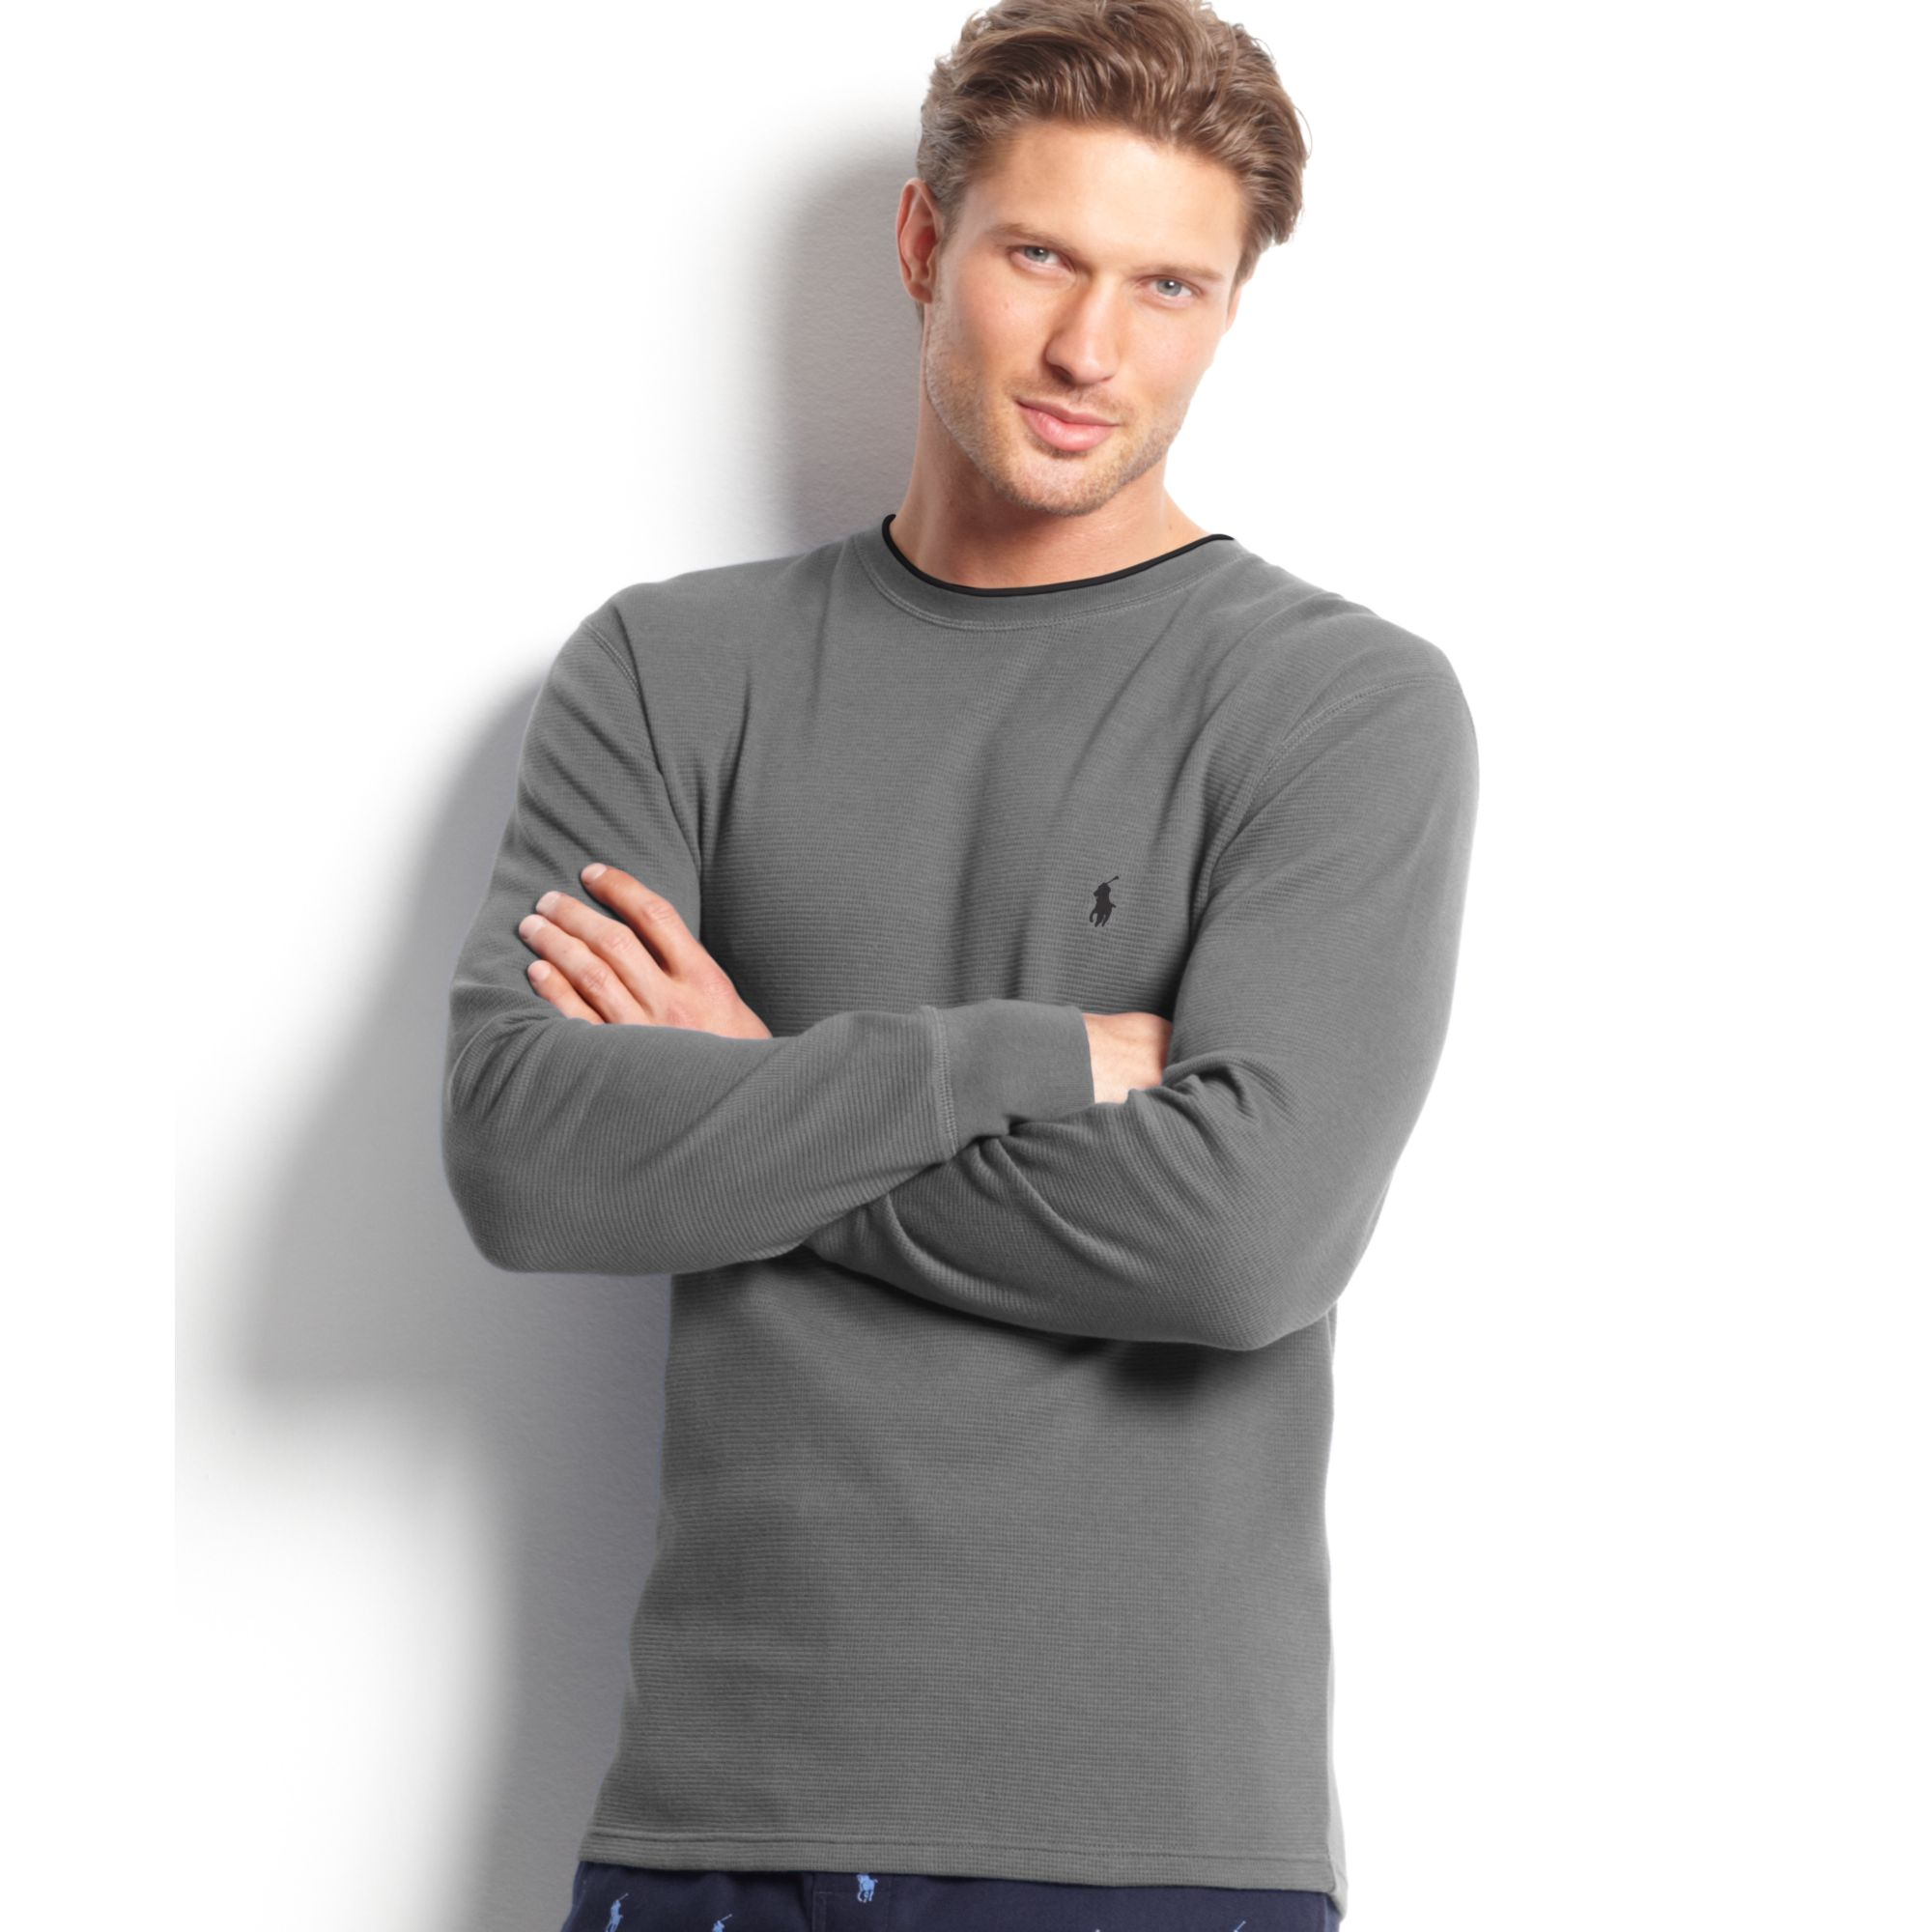 ralph lauren longsleeve crewneck waffleknit tipped thermal top in gray for men andover heather. Black Bedroom Furniture Sets. Home Design Ideas